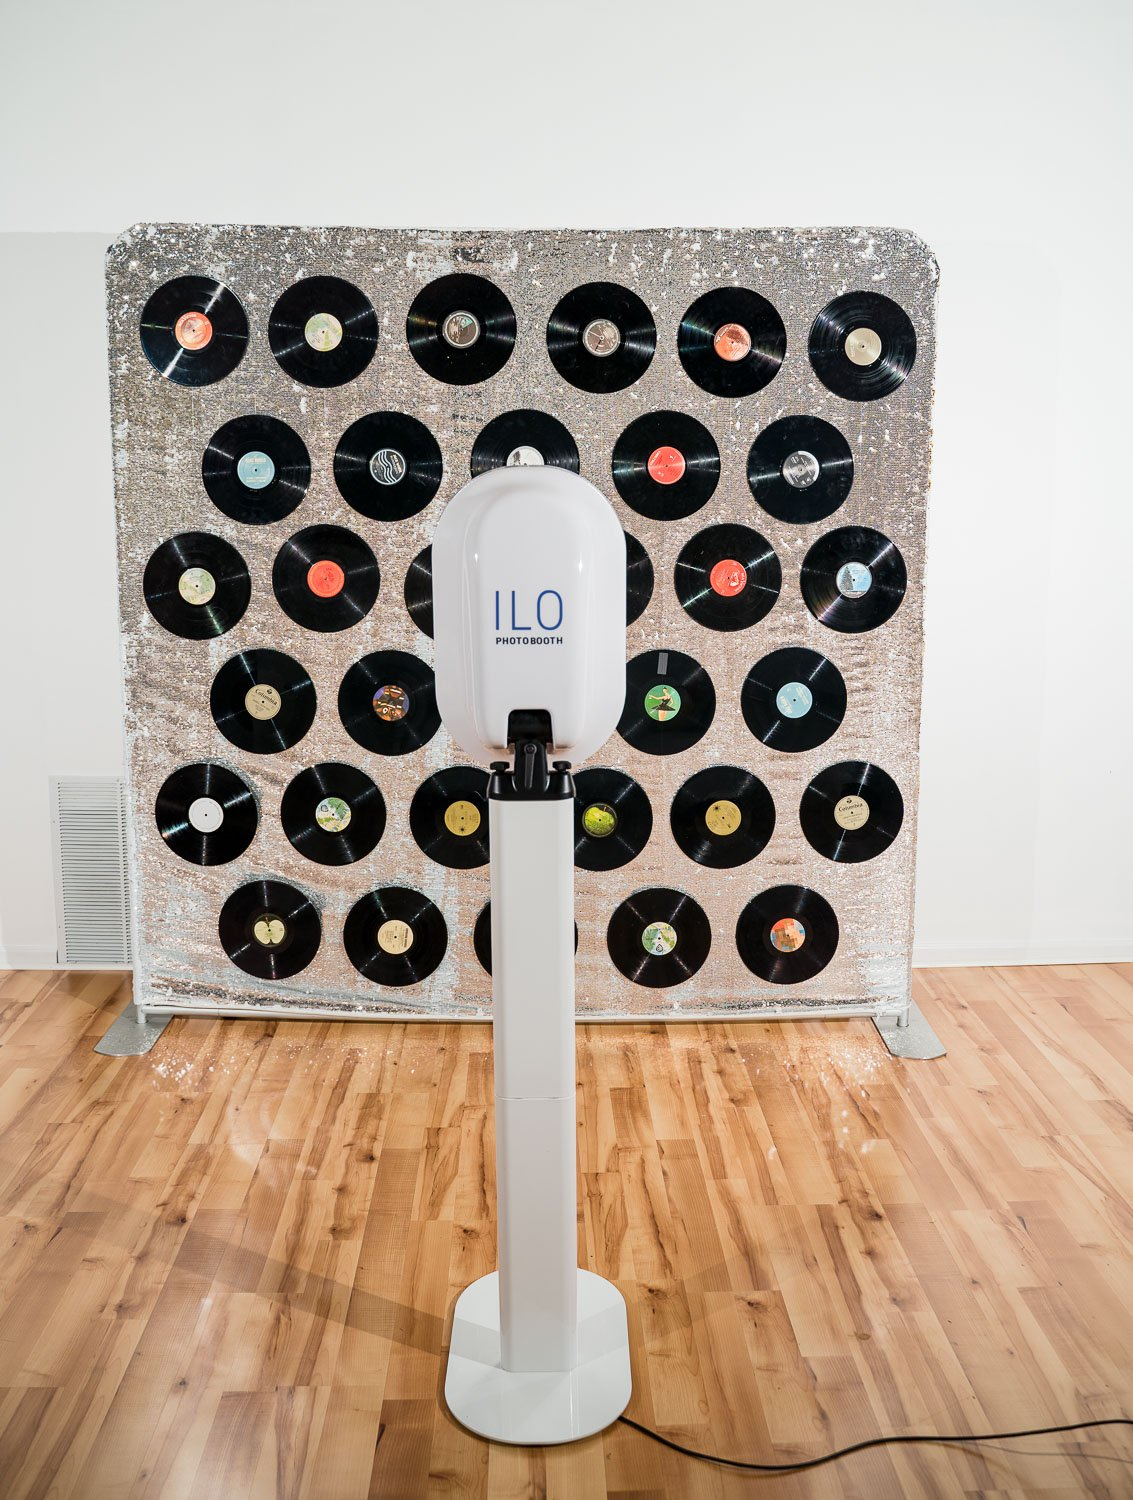 a memphis photo booth rental, ILO Photo Booth, in front of a custom made backdrop for a music theme featuring vinyl records on a sequins backdrop